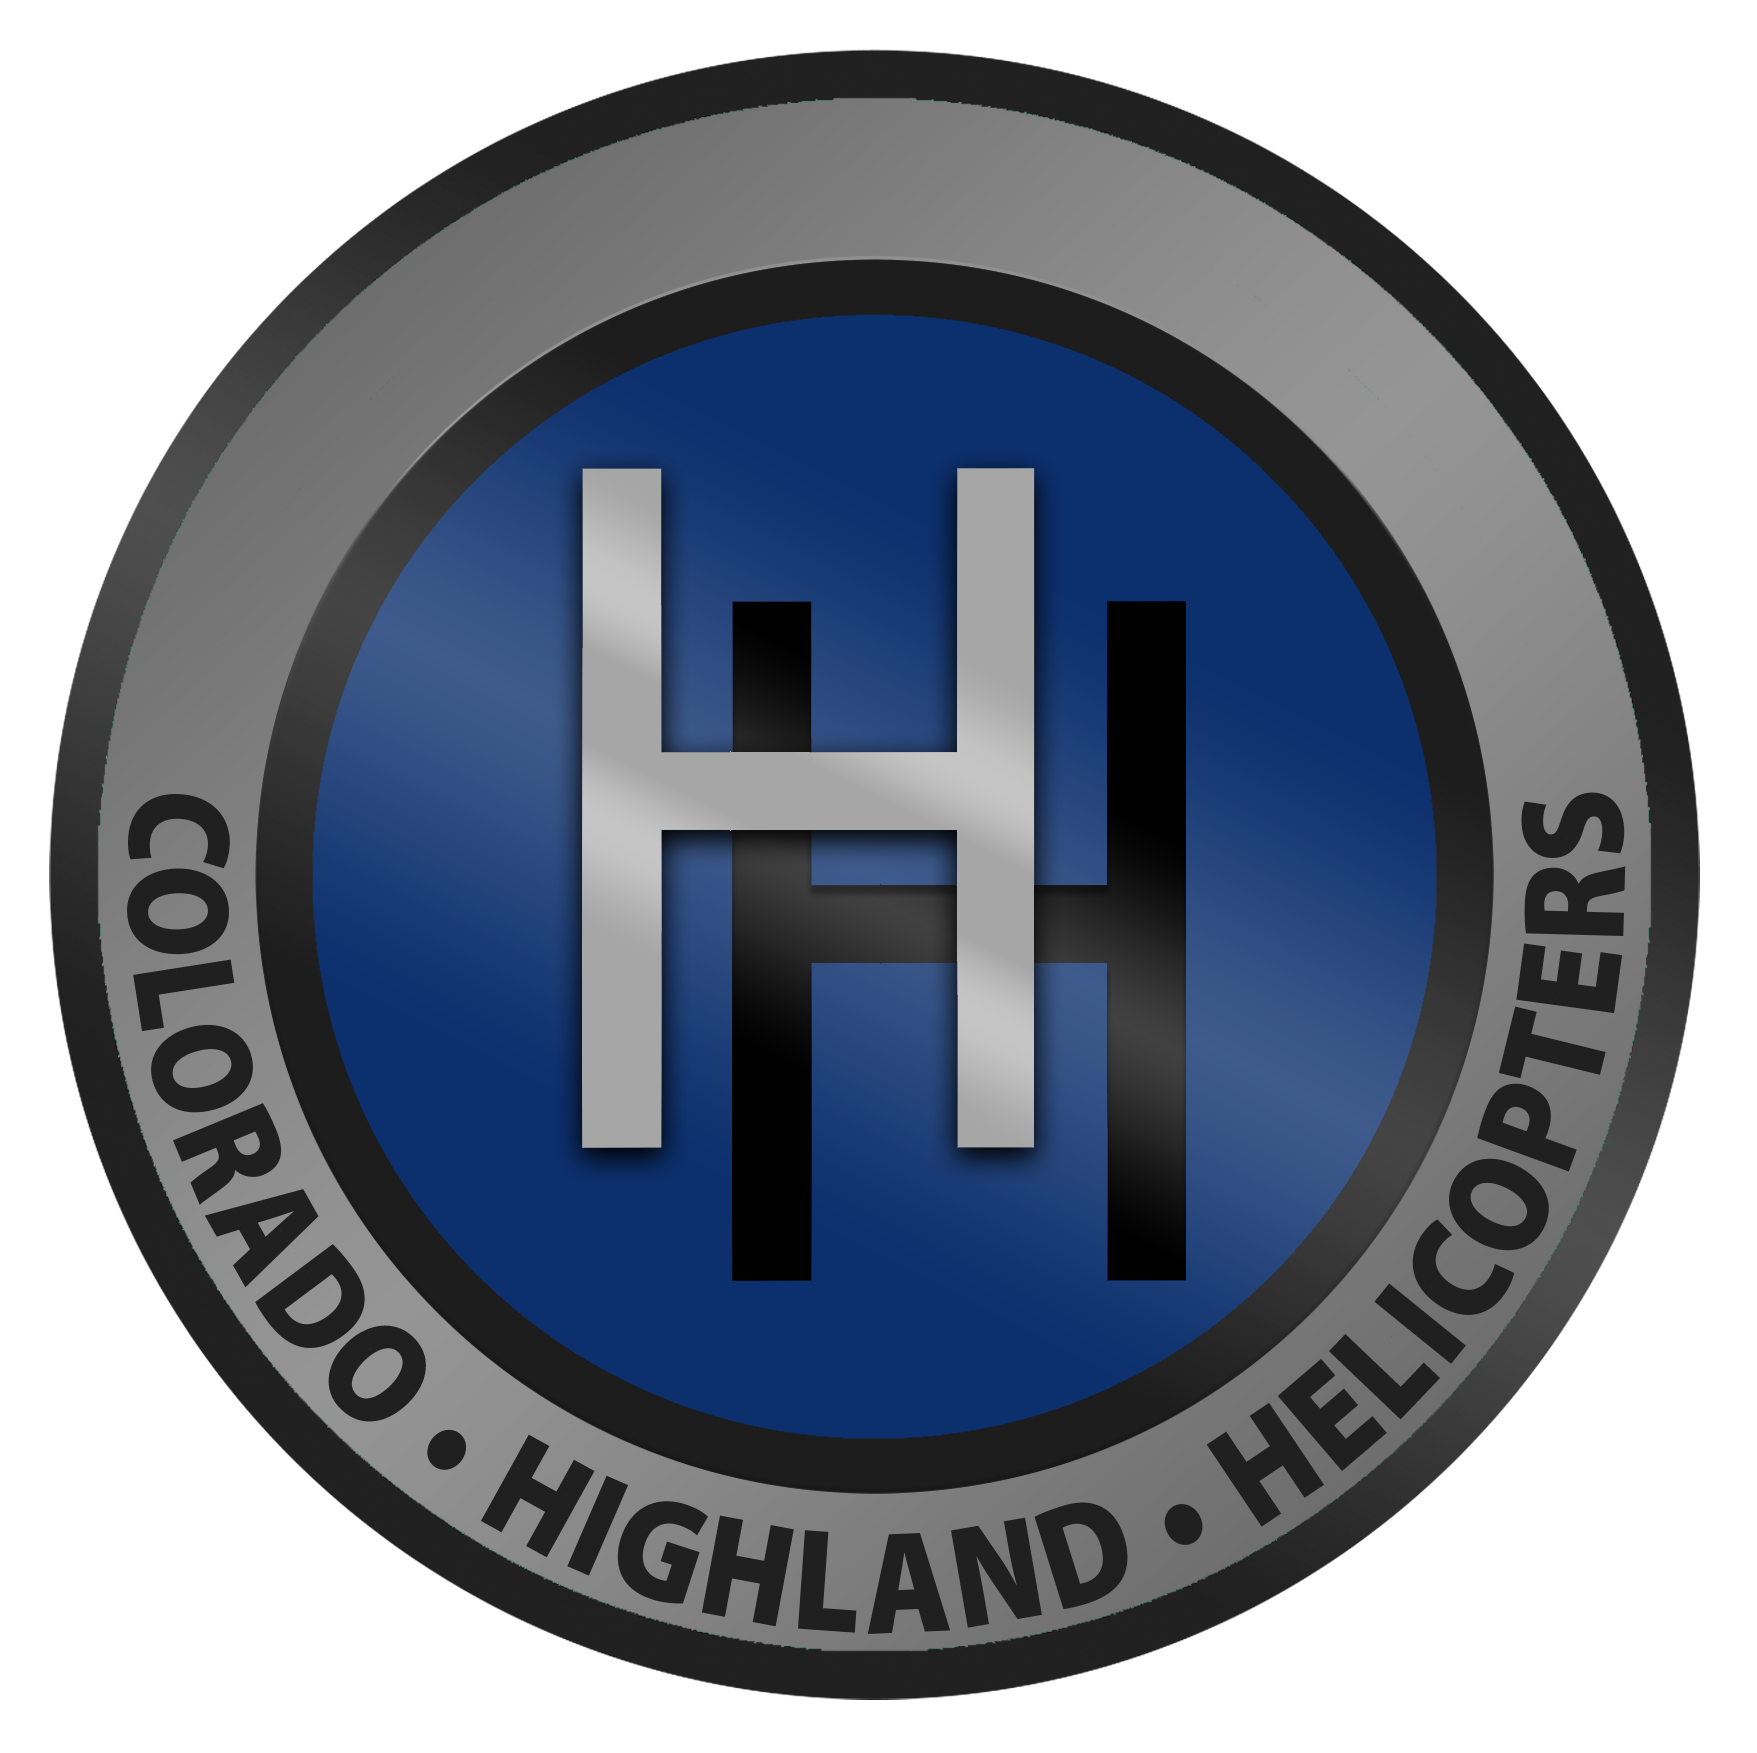 Colorado Highland Helicopters